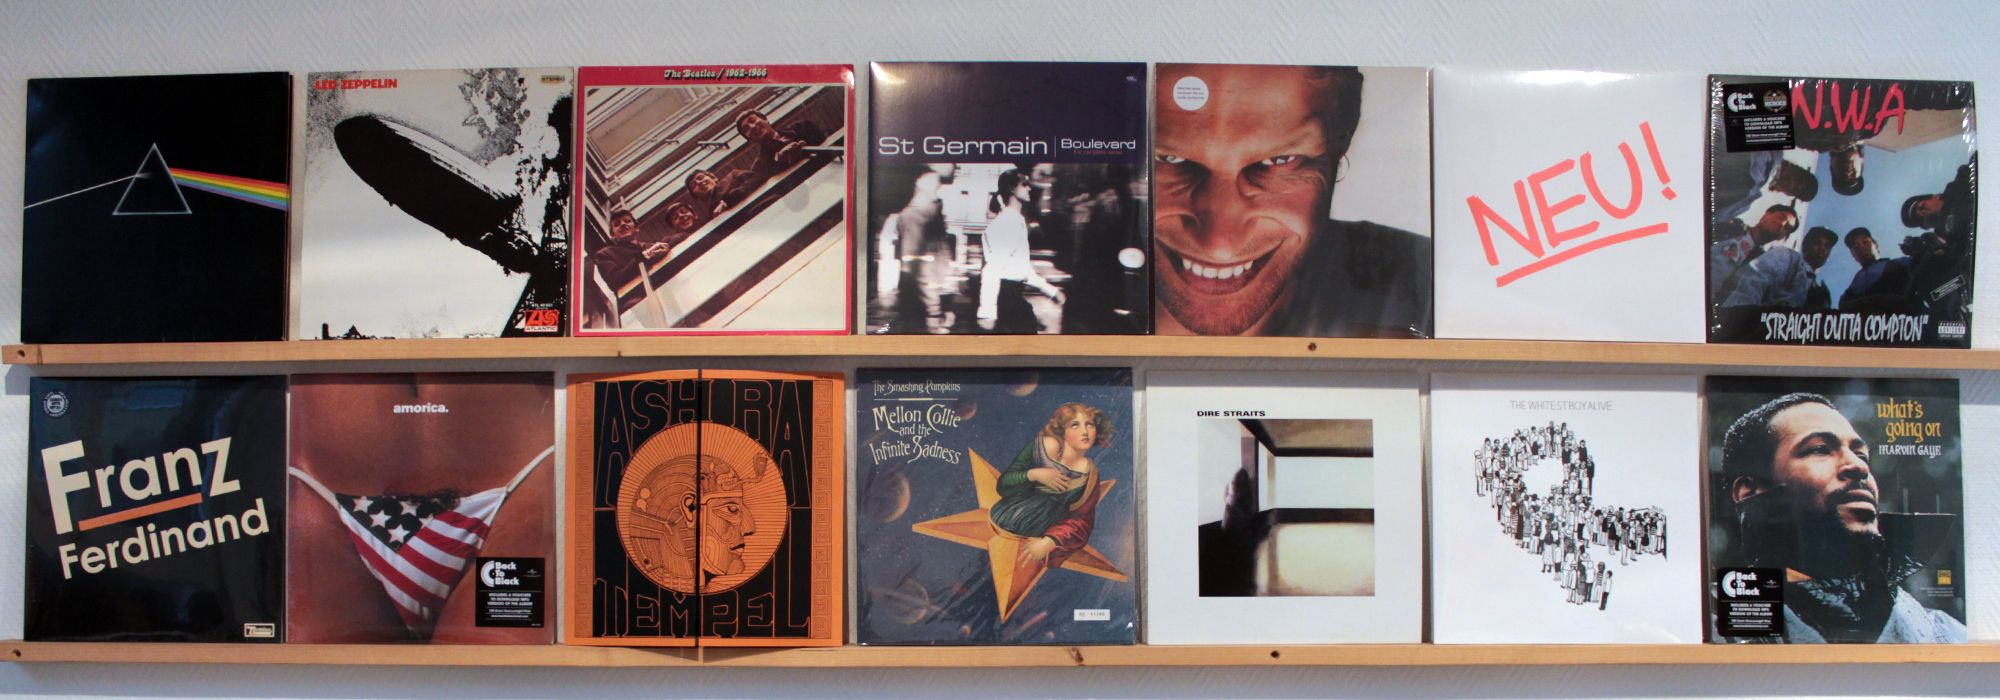 Schallplatten aus den Bereichen: Rock, Pop, Punk, Progressive, Psychedlic, Electronic, Hip Hop, Alternative, Indie, Jazz, Soul etc.